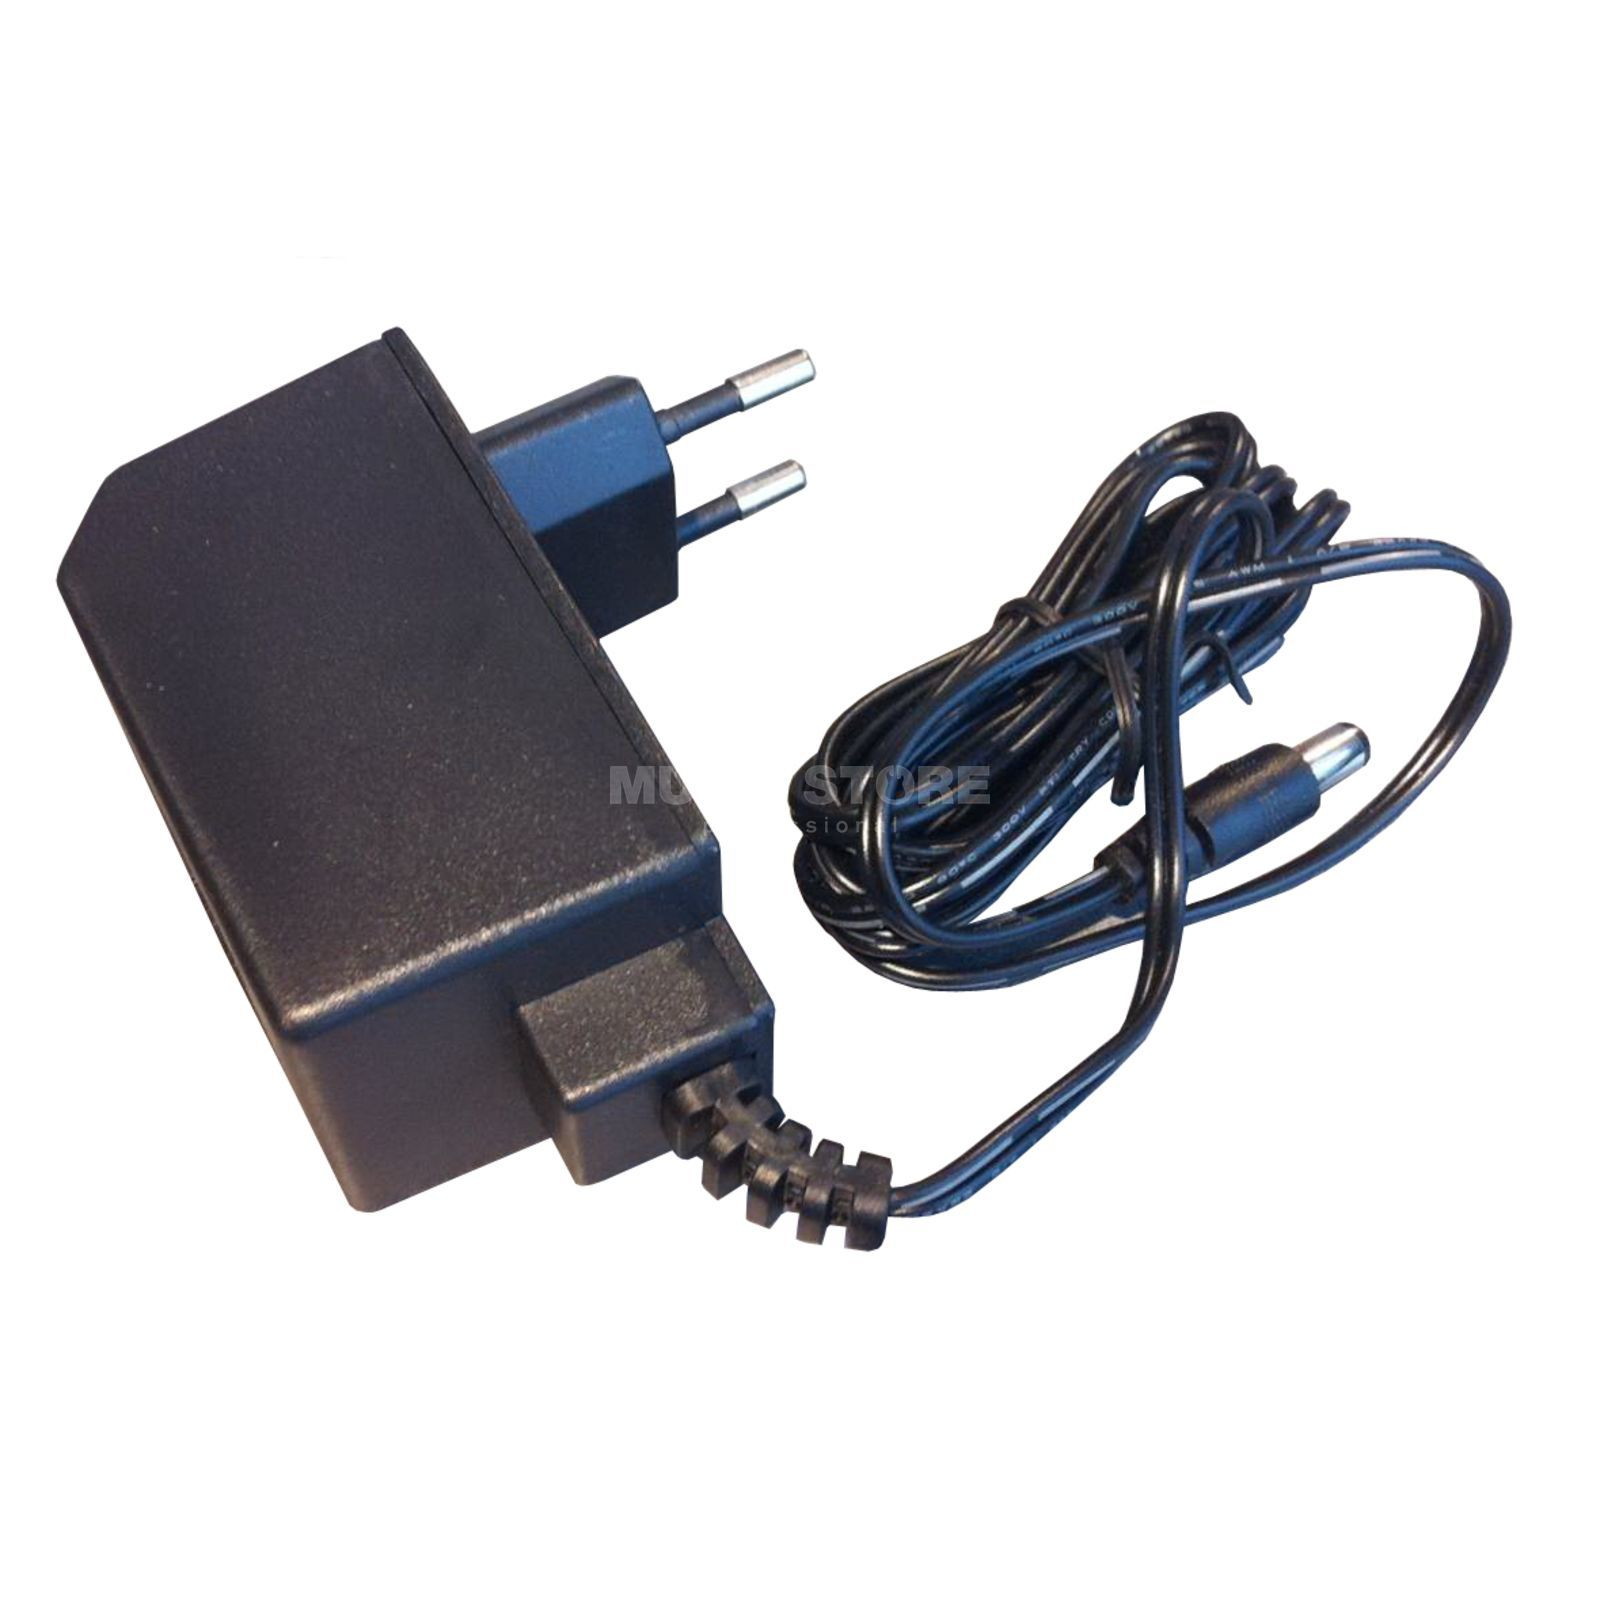 Alesis Power Adapter for DM 5 Sound Module Immagine prodotto